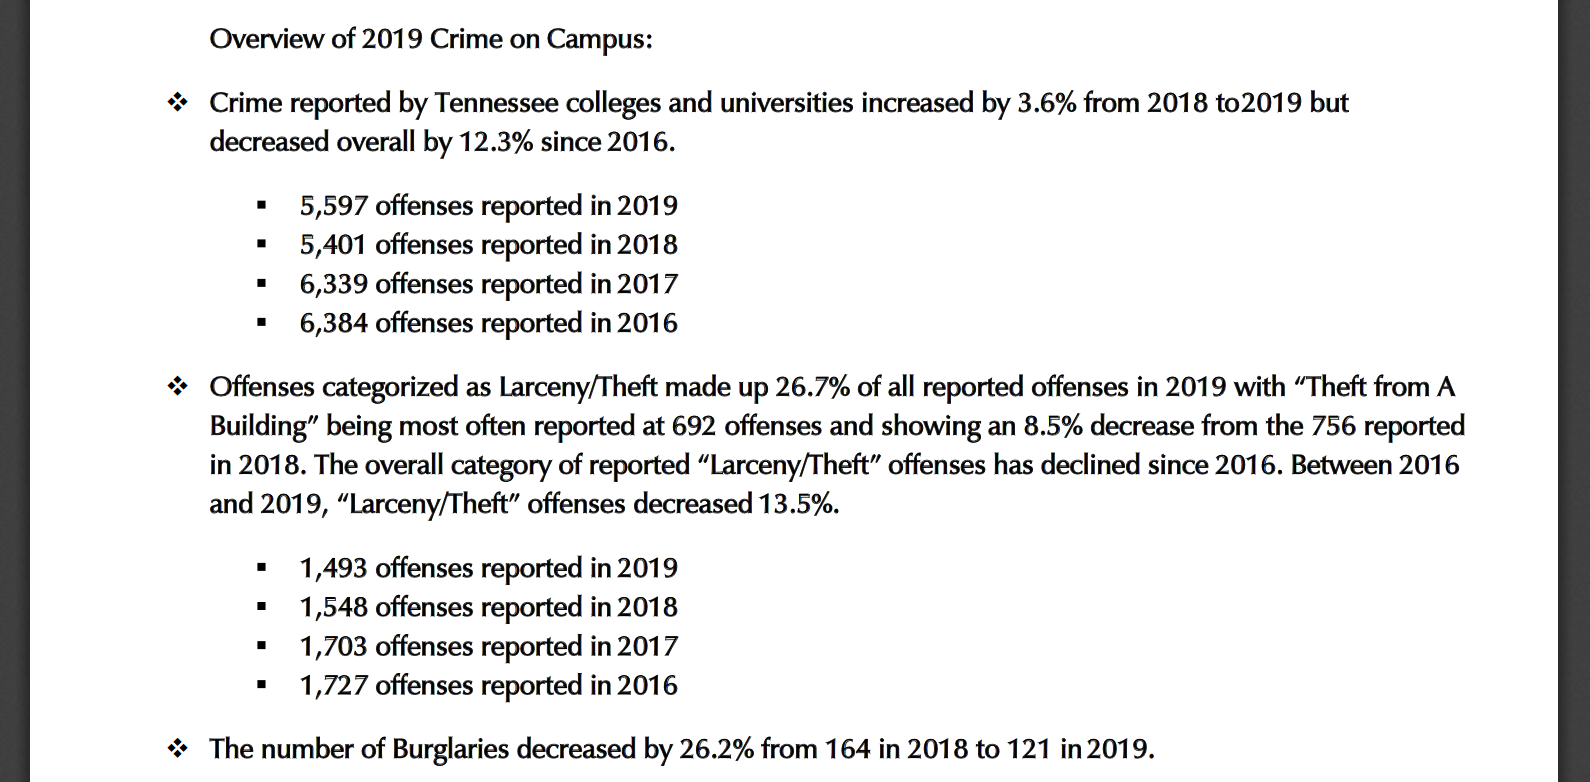 Crime on College Campuses in TENNESSEE